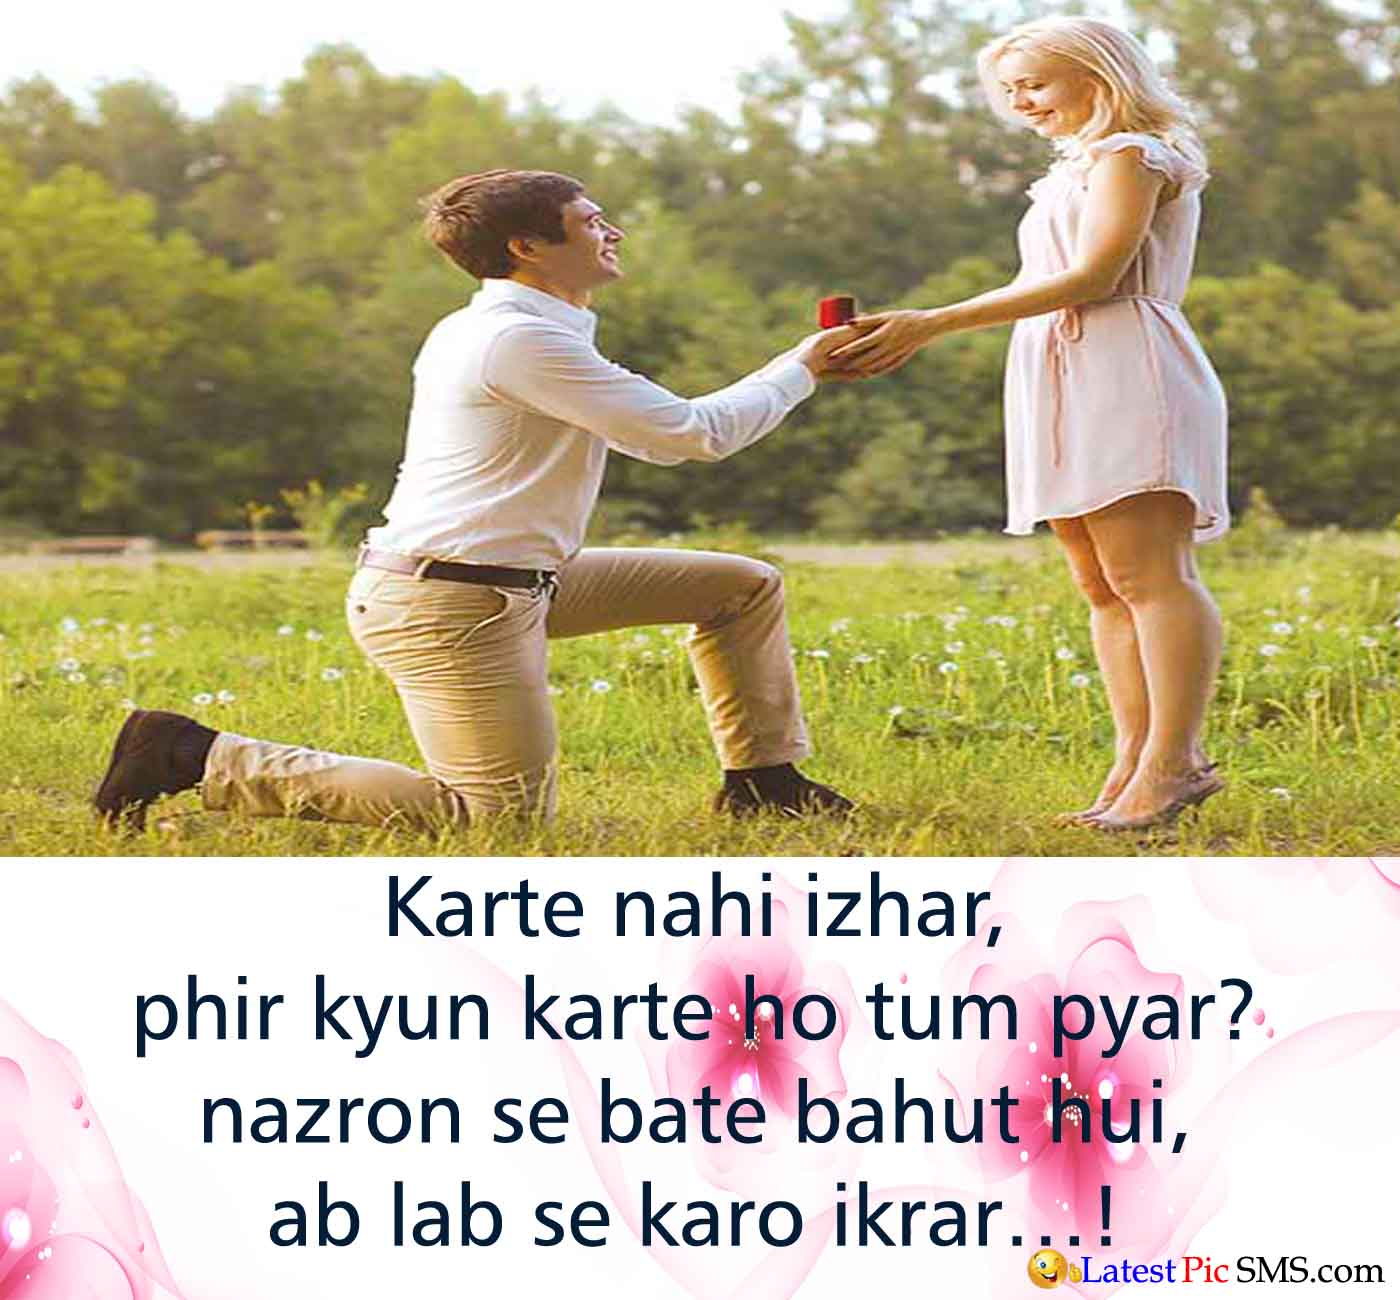 I Love You shayari in Hindi Photos